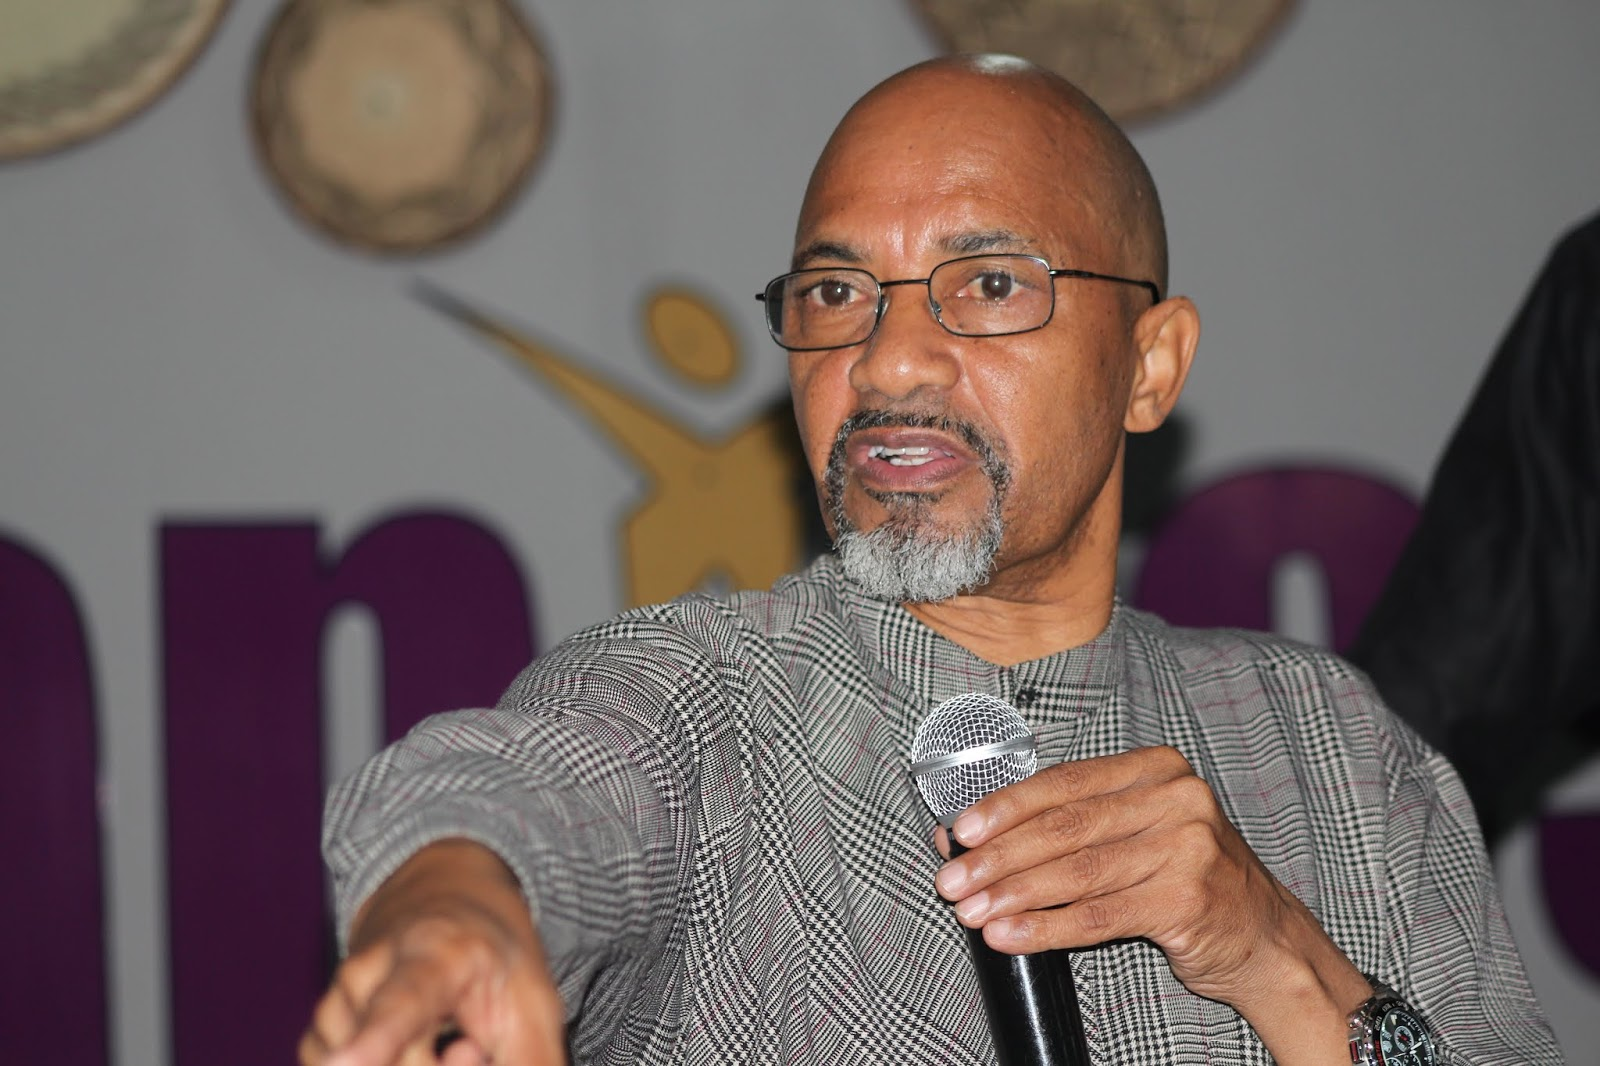 Bishop Tudor Bismark Preaches At New Life Covenant Church